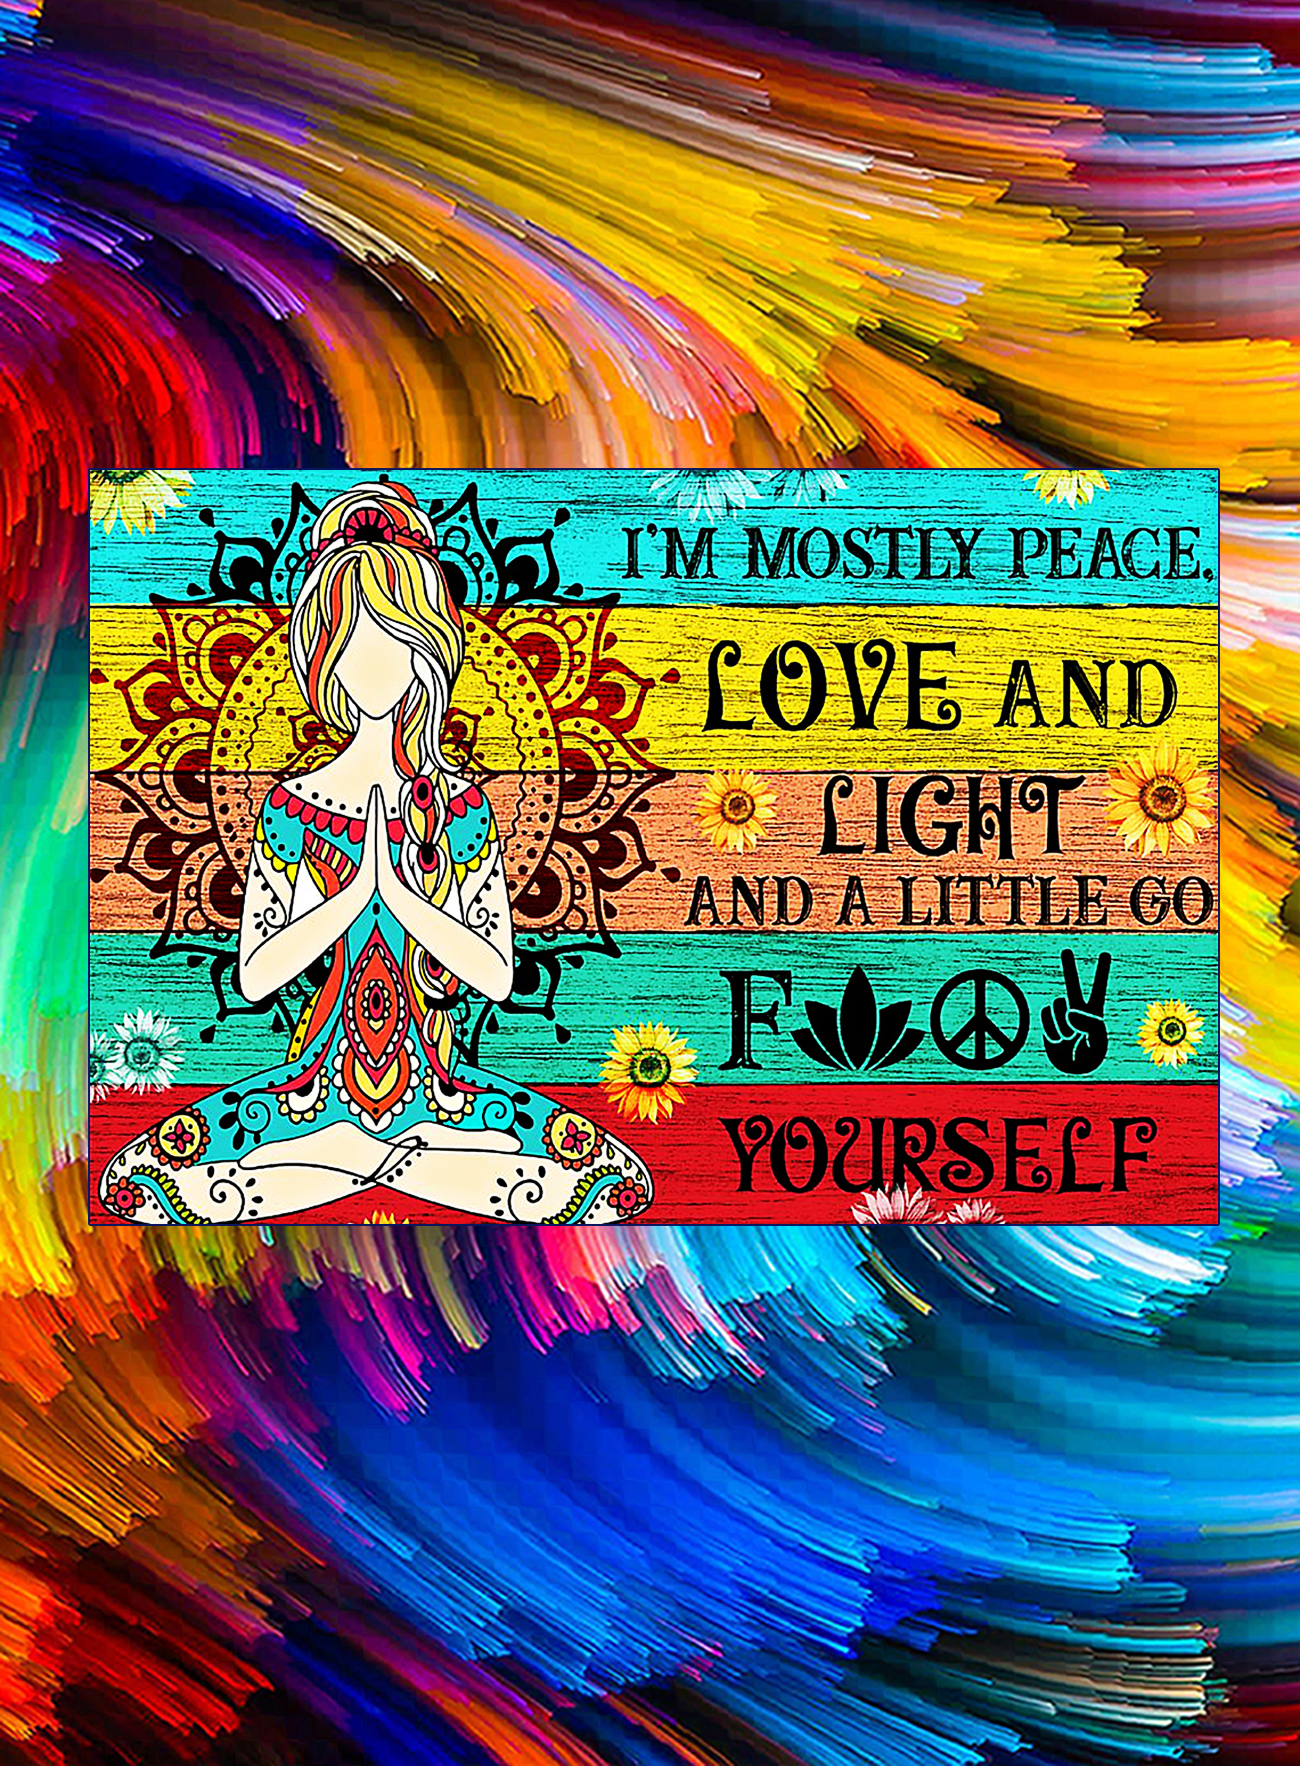 Yoga I'm mostly peace love and light poster - A4